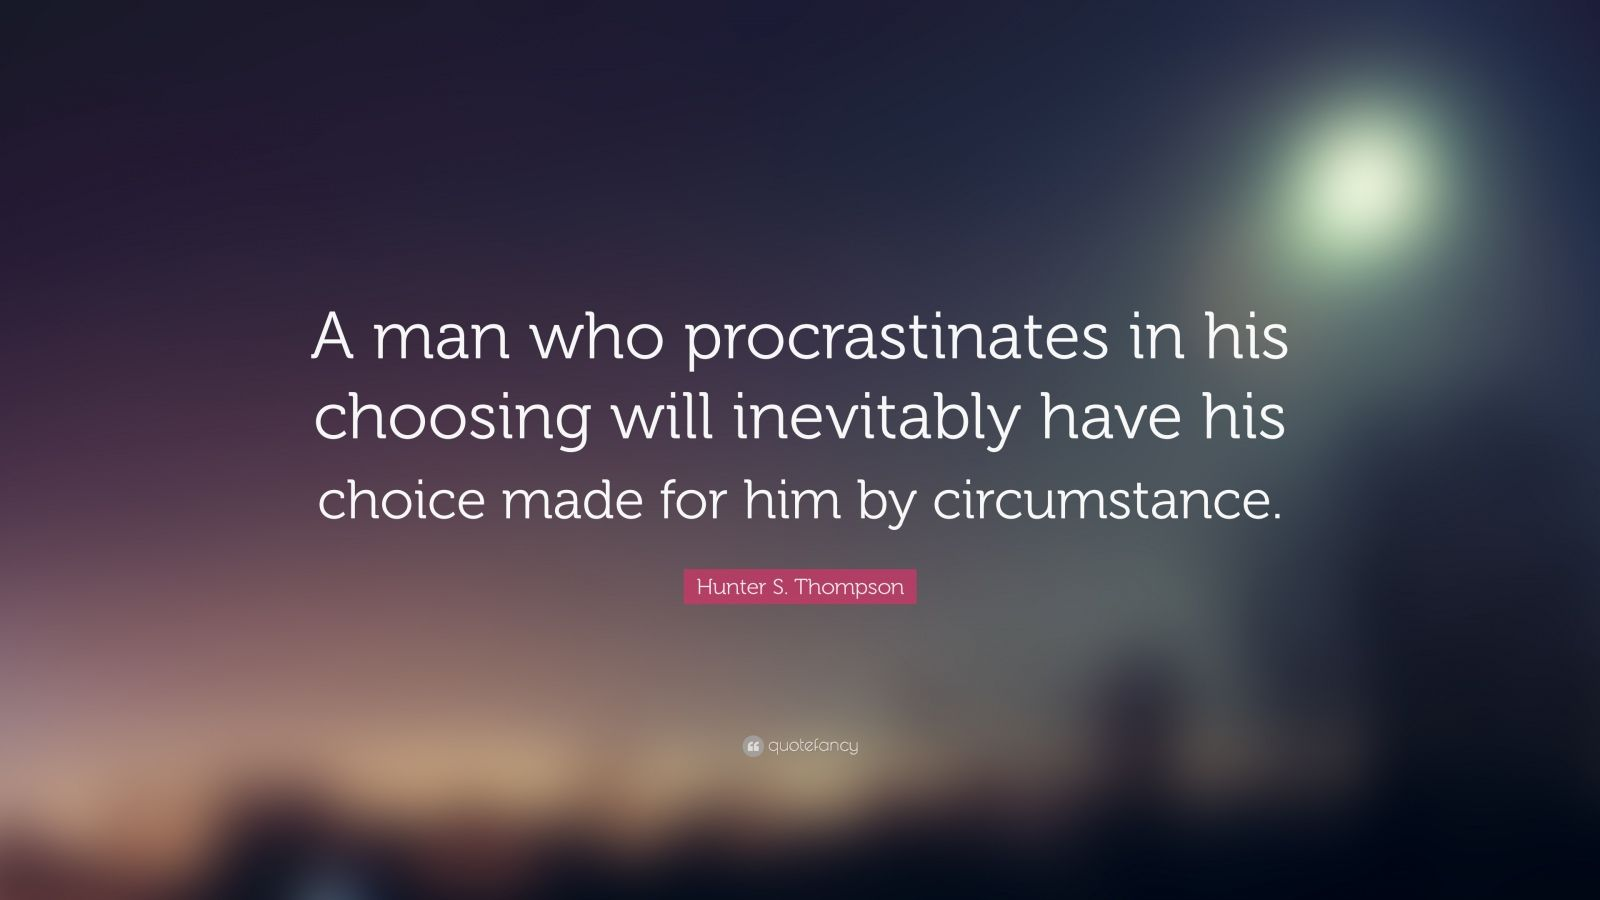 """Hunter S. Thompson Quote: """"A man who procrastinates in his choosing will inevitably have his choice made for him by circumstance."""""""